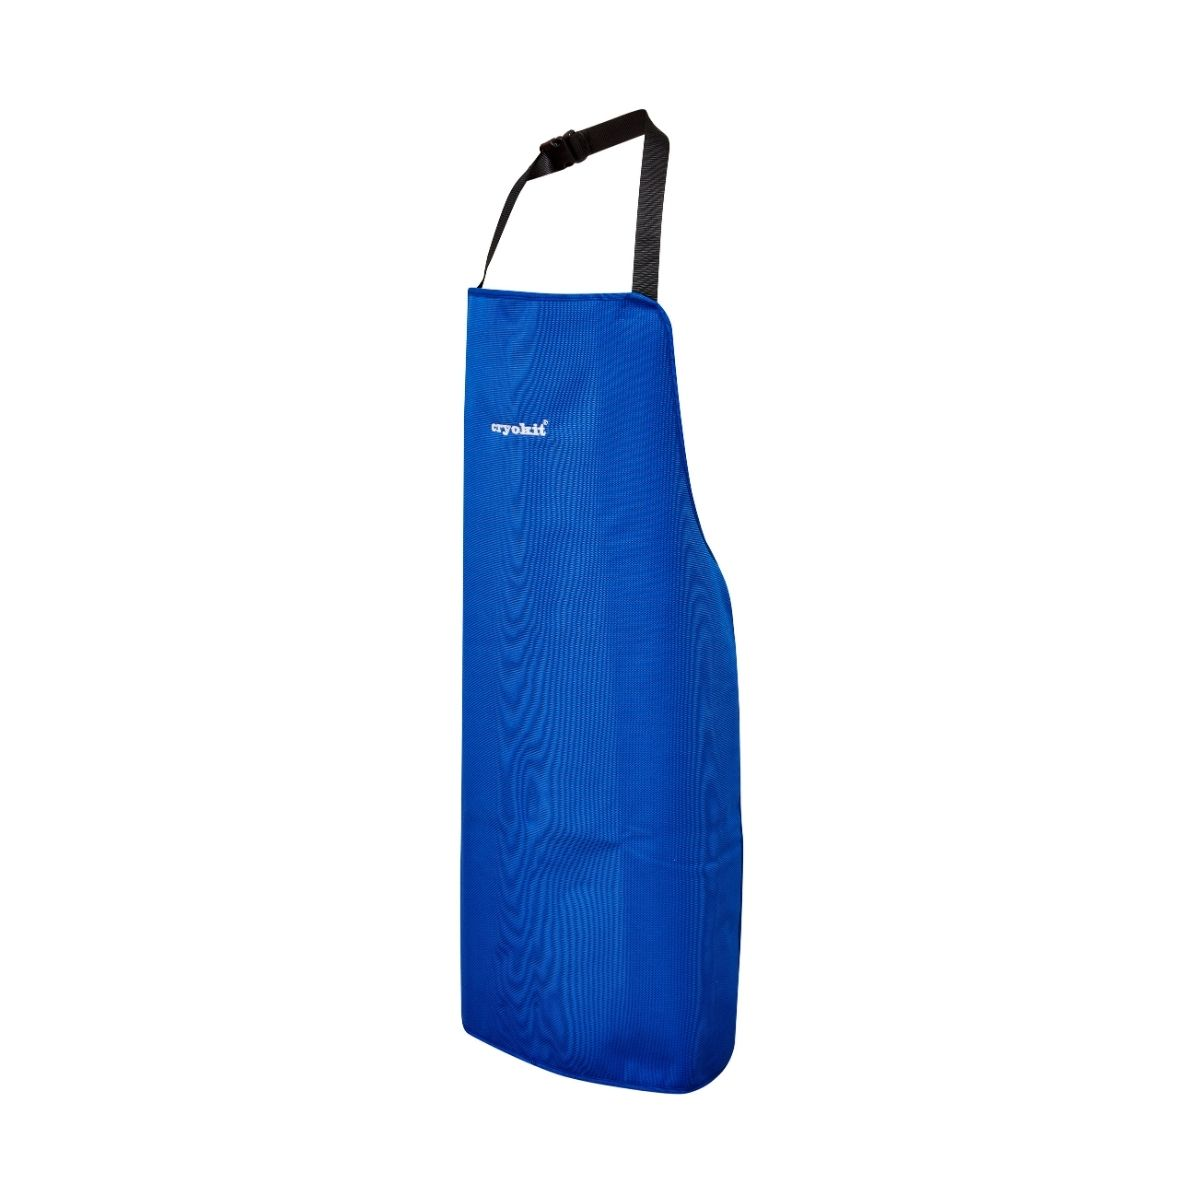 AS9556 Cryogenic Protective Apron - Side